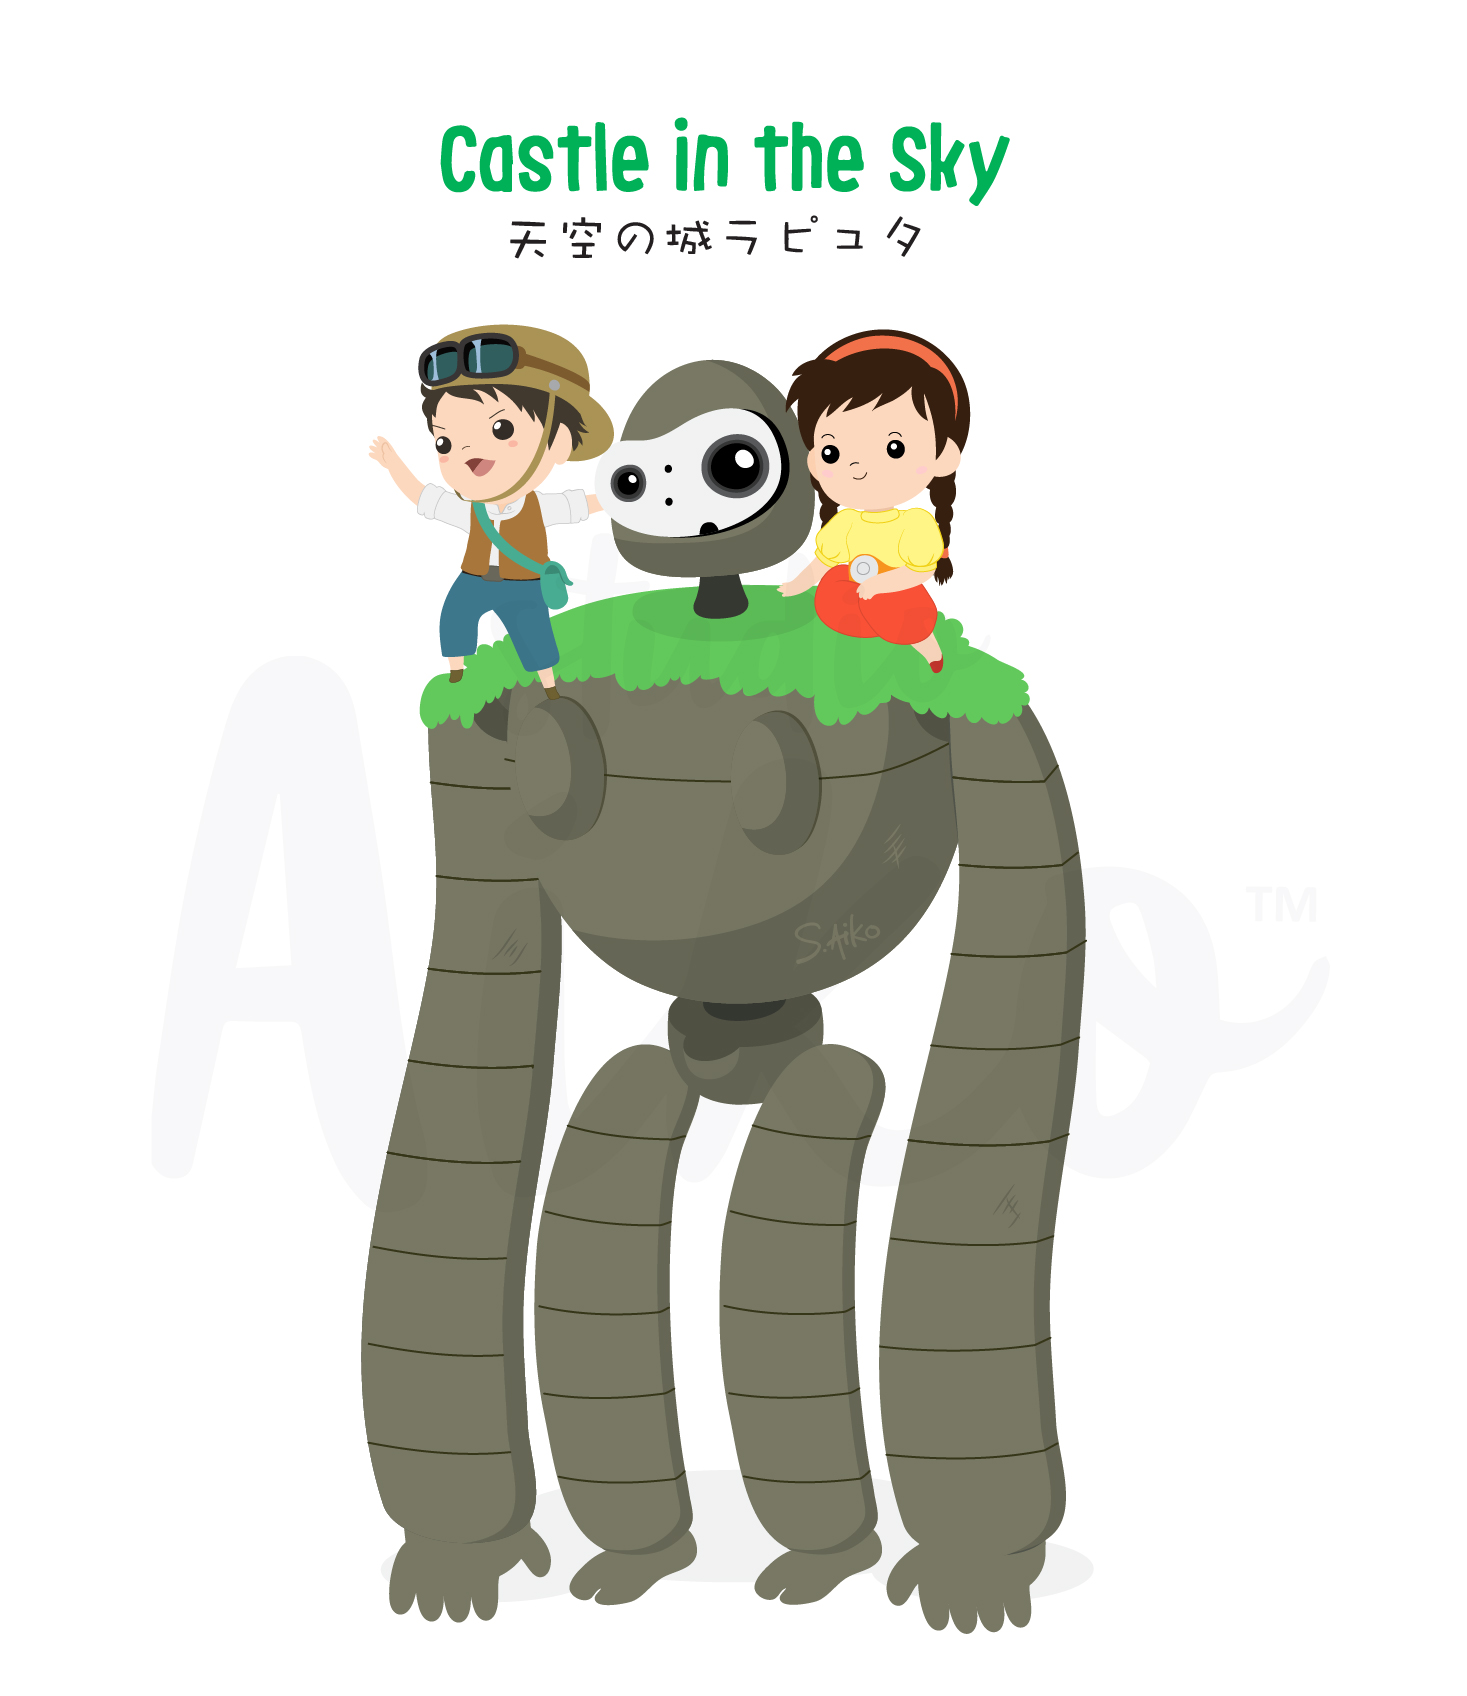 Ghibli-Castle in the sky